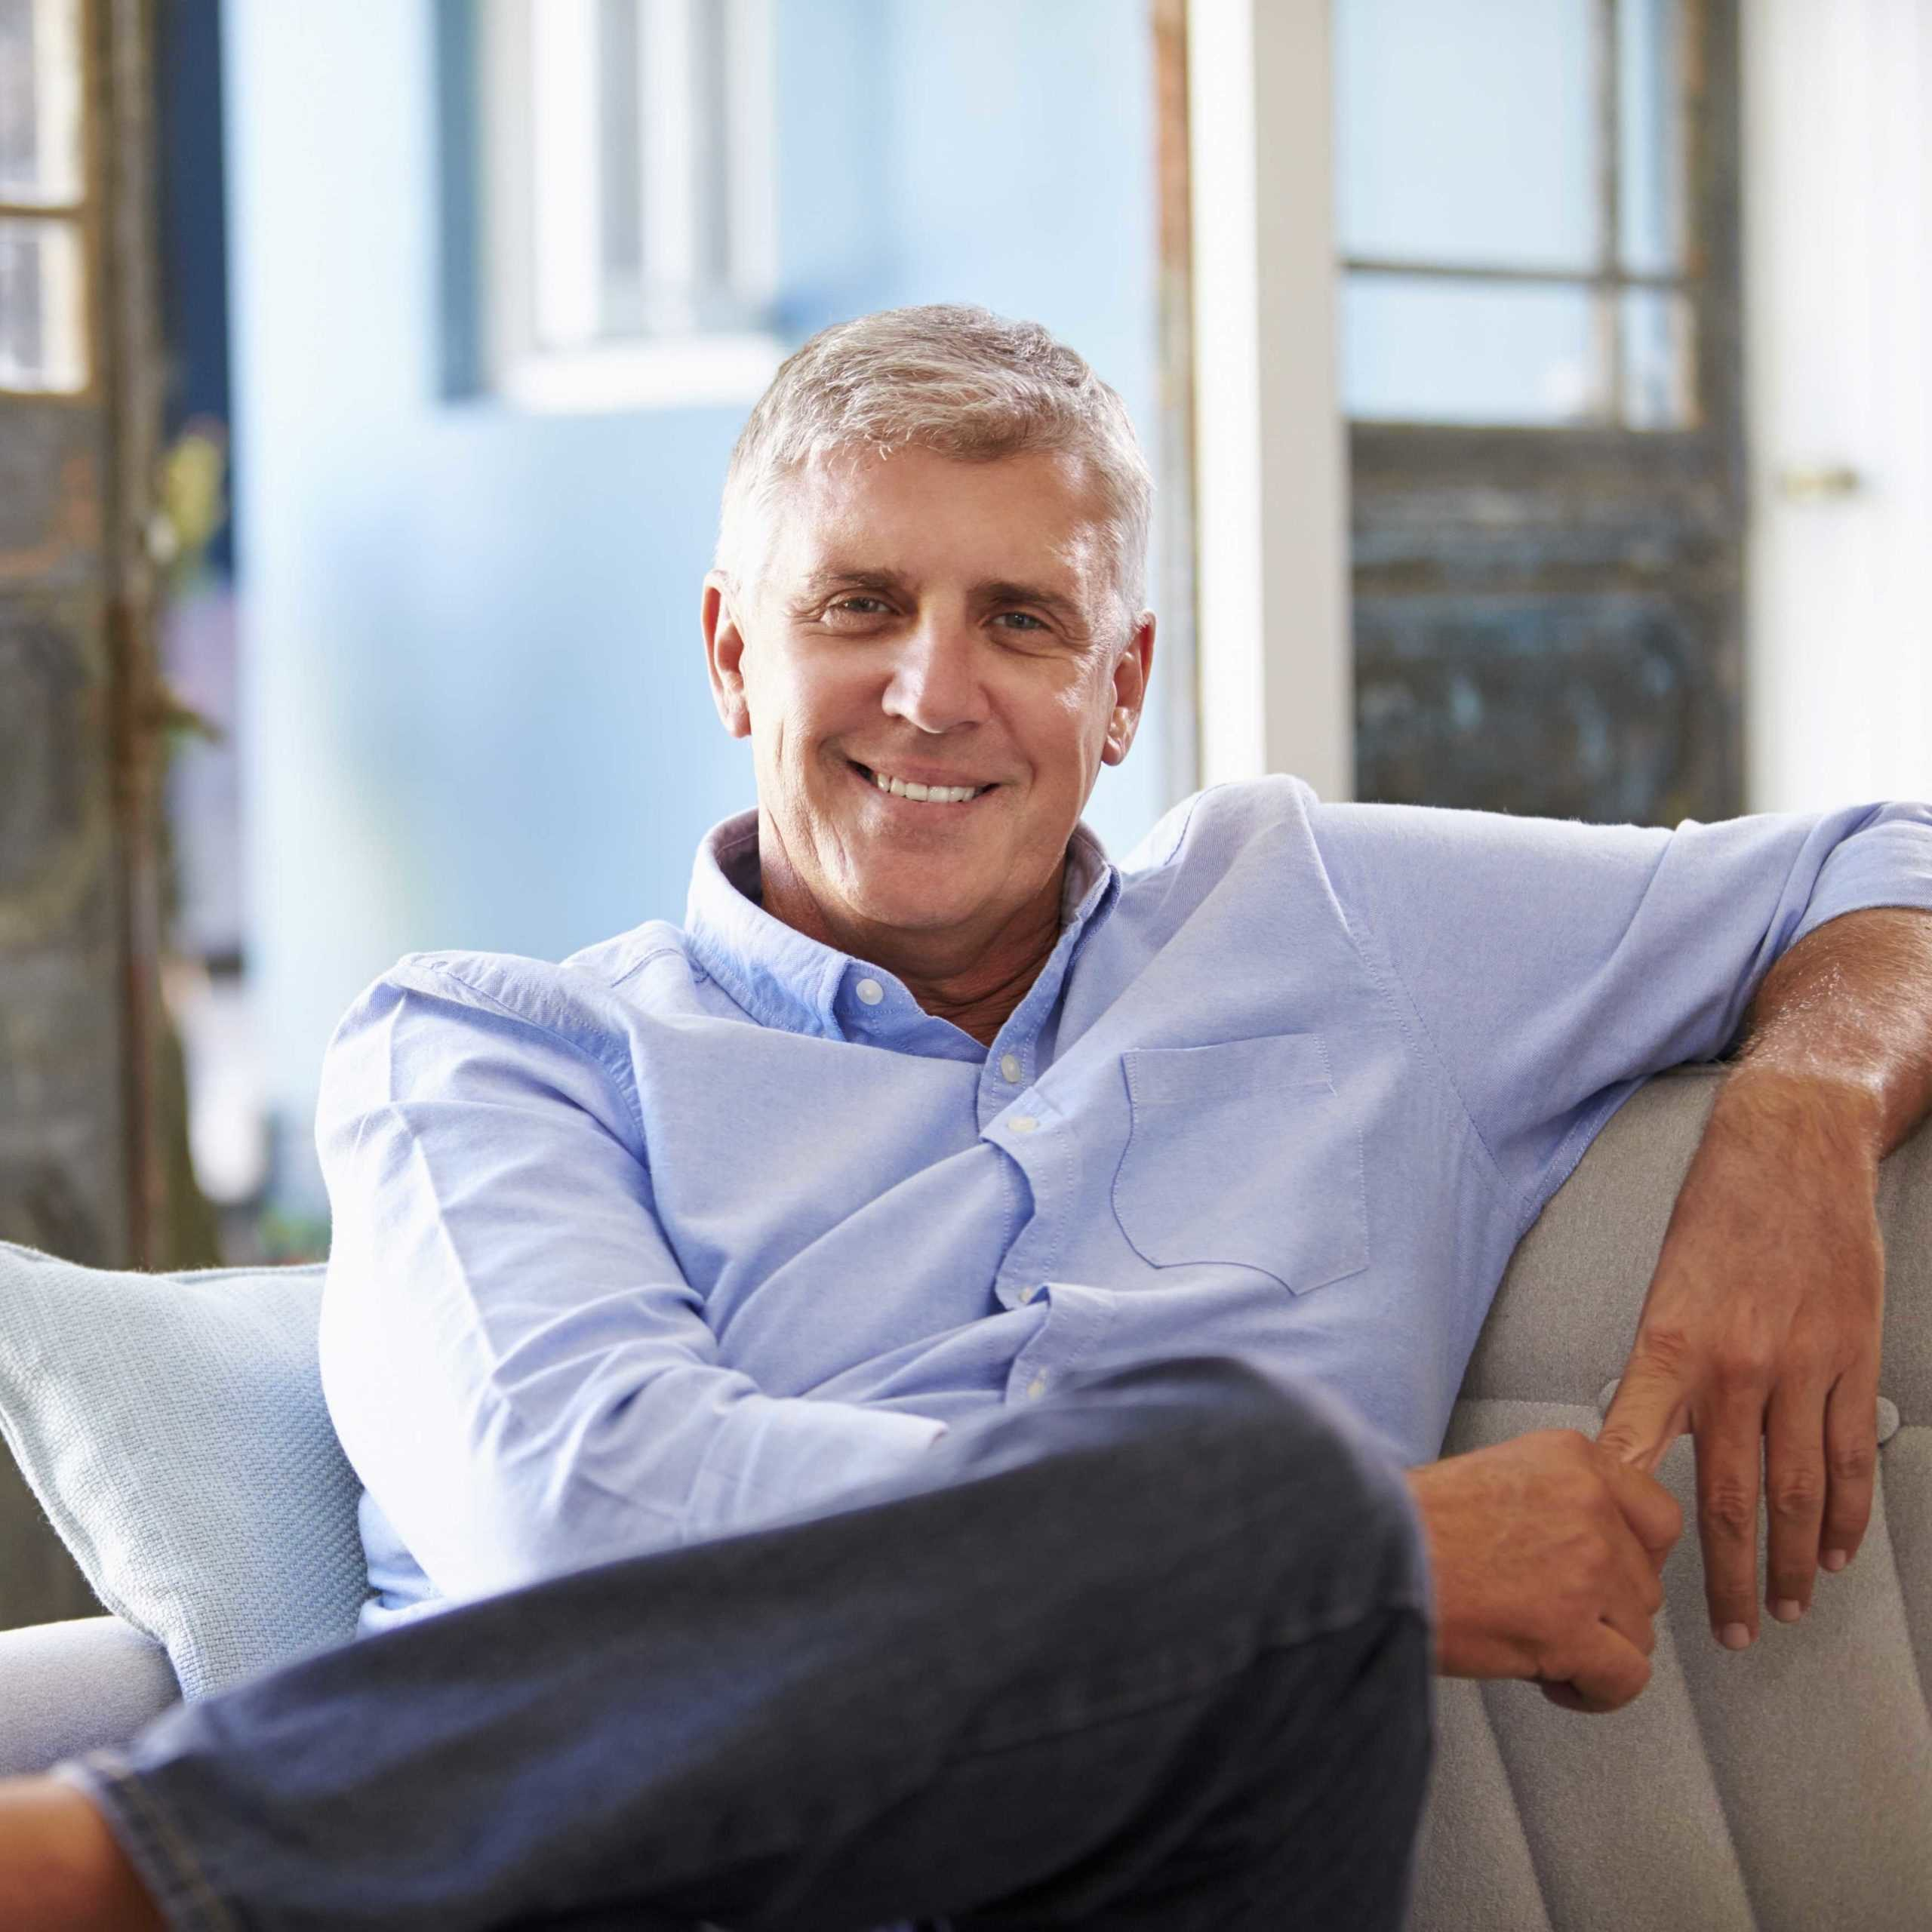 Our Hormone Replacement Therapy Programs - Bioidentical Hormones in Springfield Missouri - Smiling Man